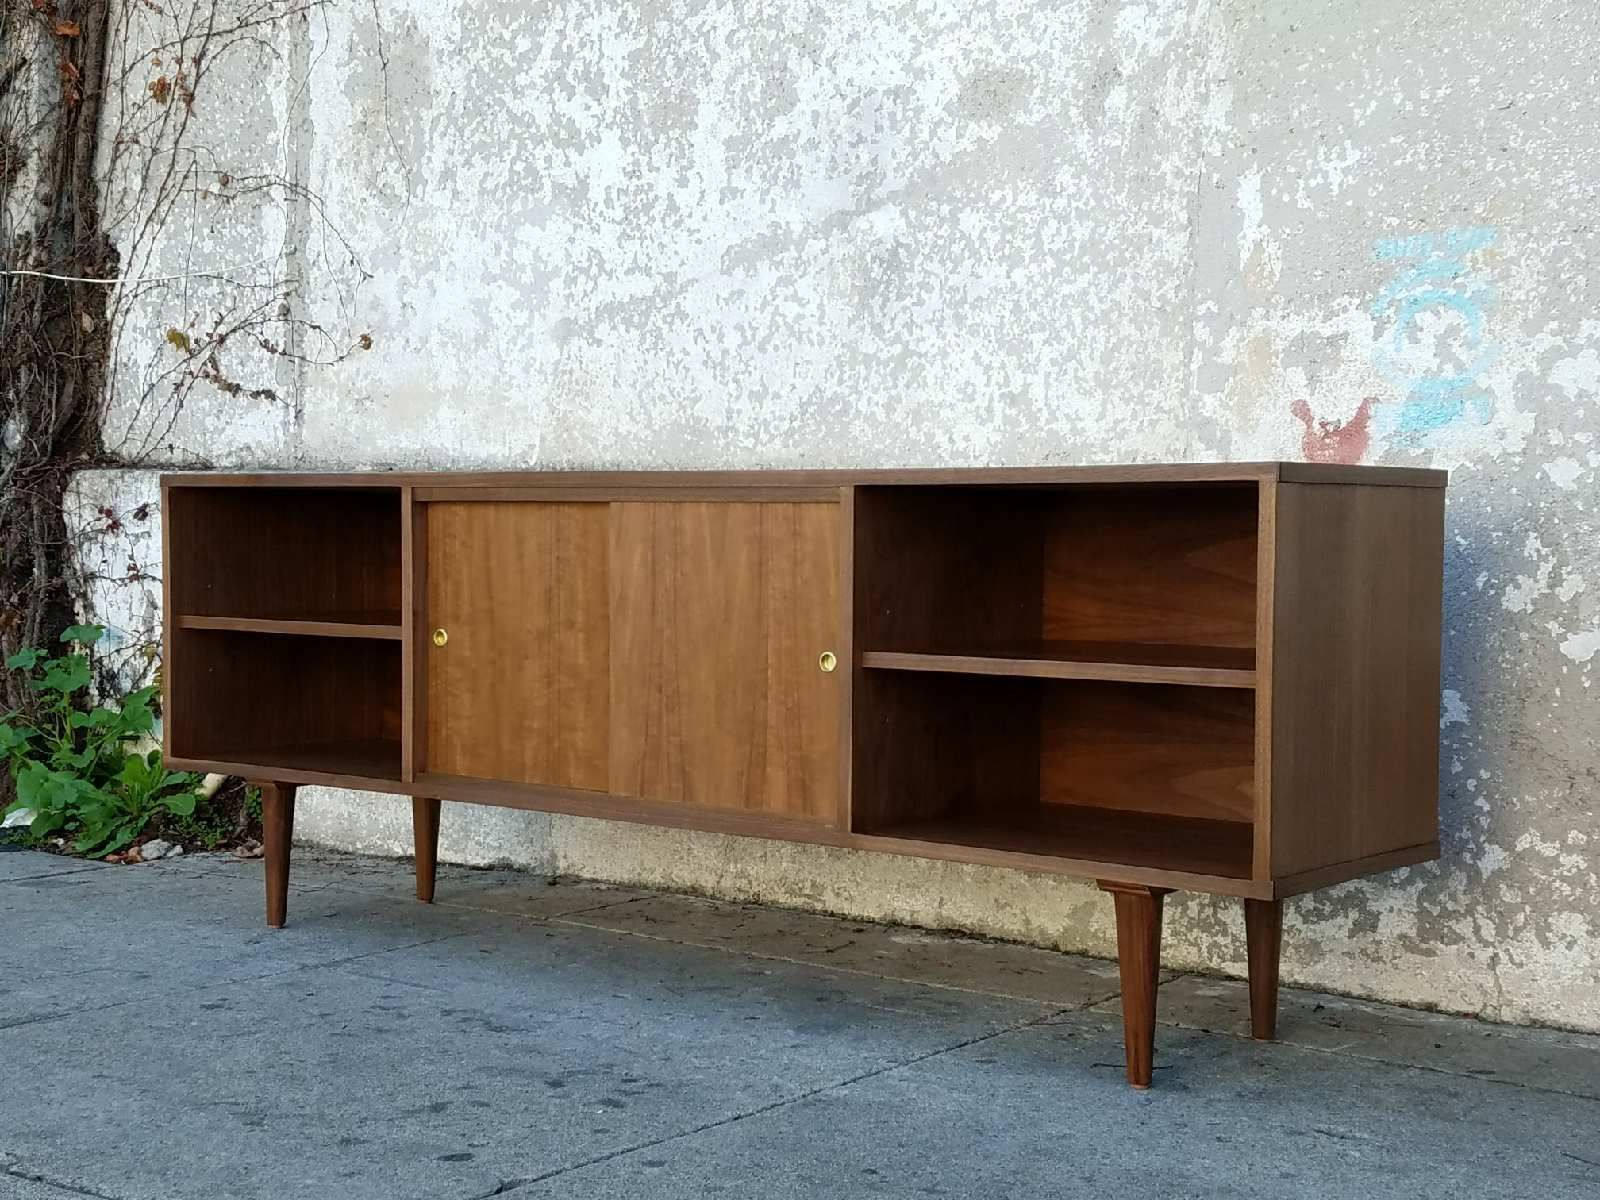 The Highland Park Walnut Credenza Sideboard – 72 L X 16 W Intended For Park Credenzas (View 7 of 15)